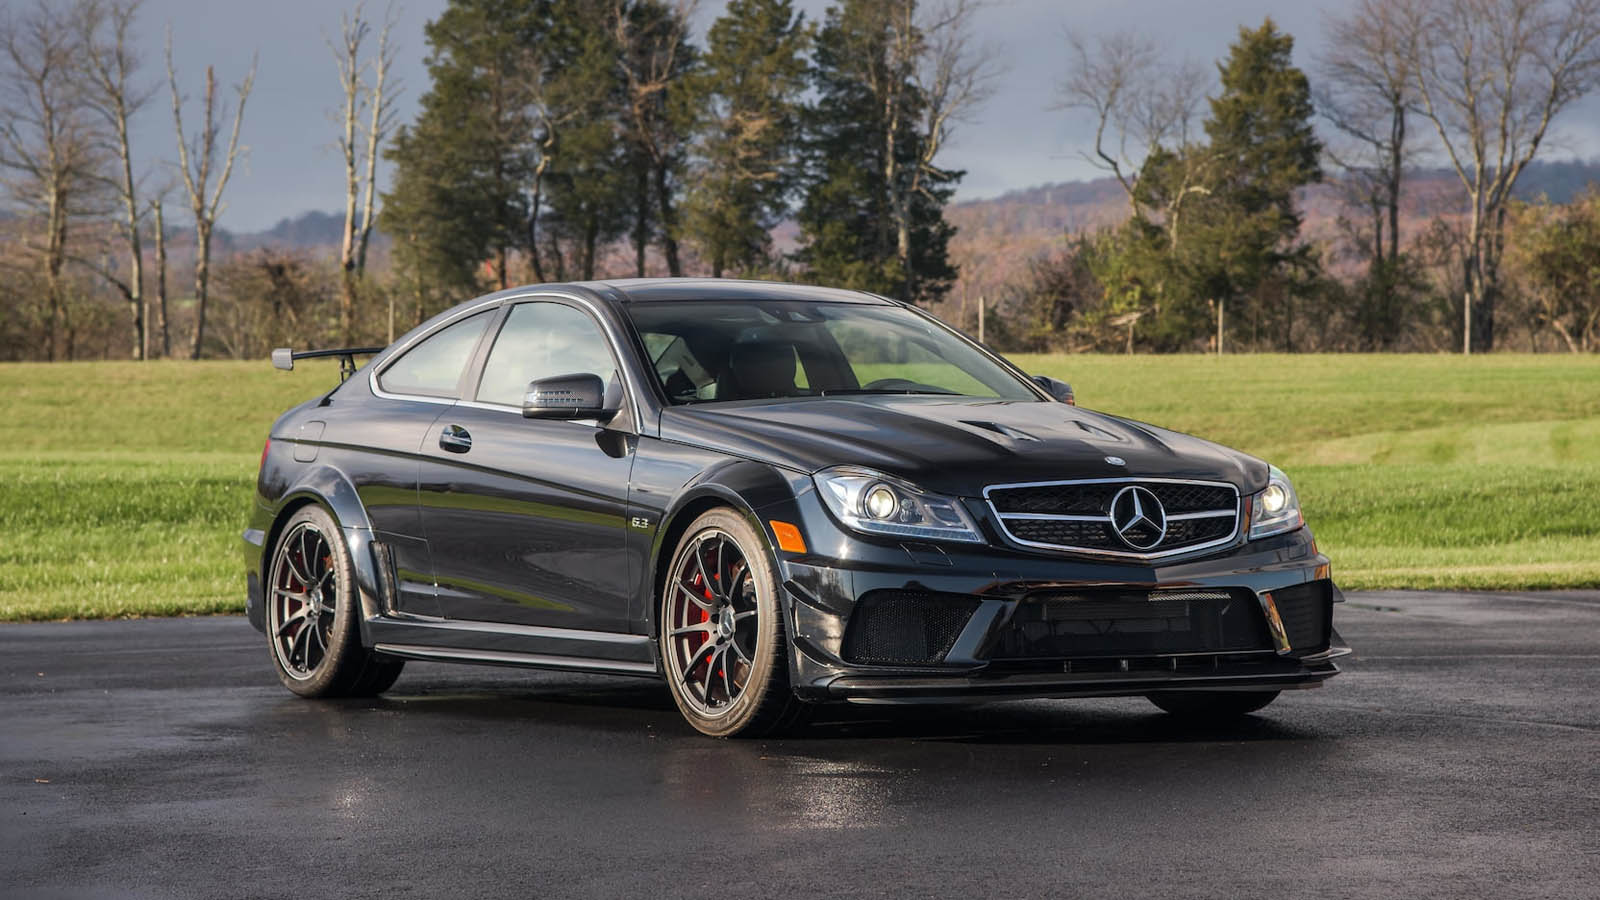 Mercedes amg black series collection for sale in florida for Mercedes benz c63 amg black series for sale